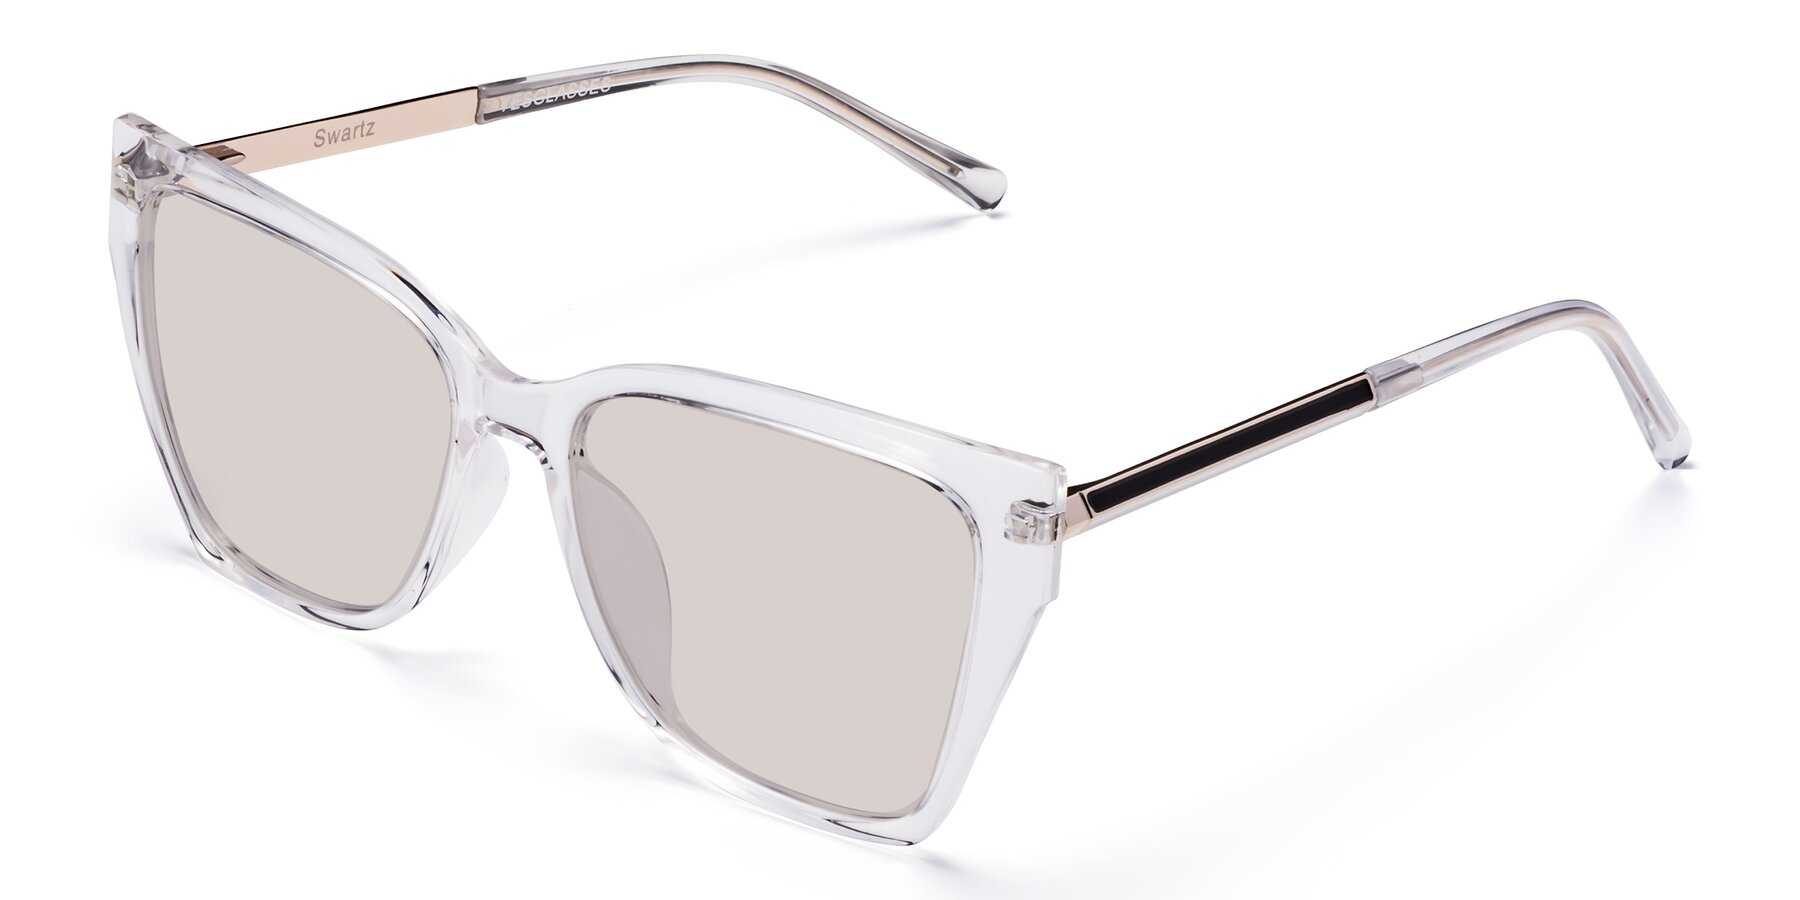 Angle of Swartz in Clear with Light Brown Tinted Lenses